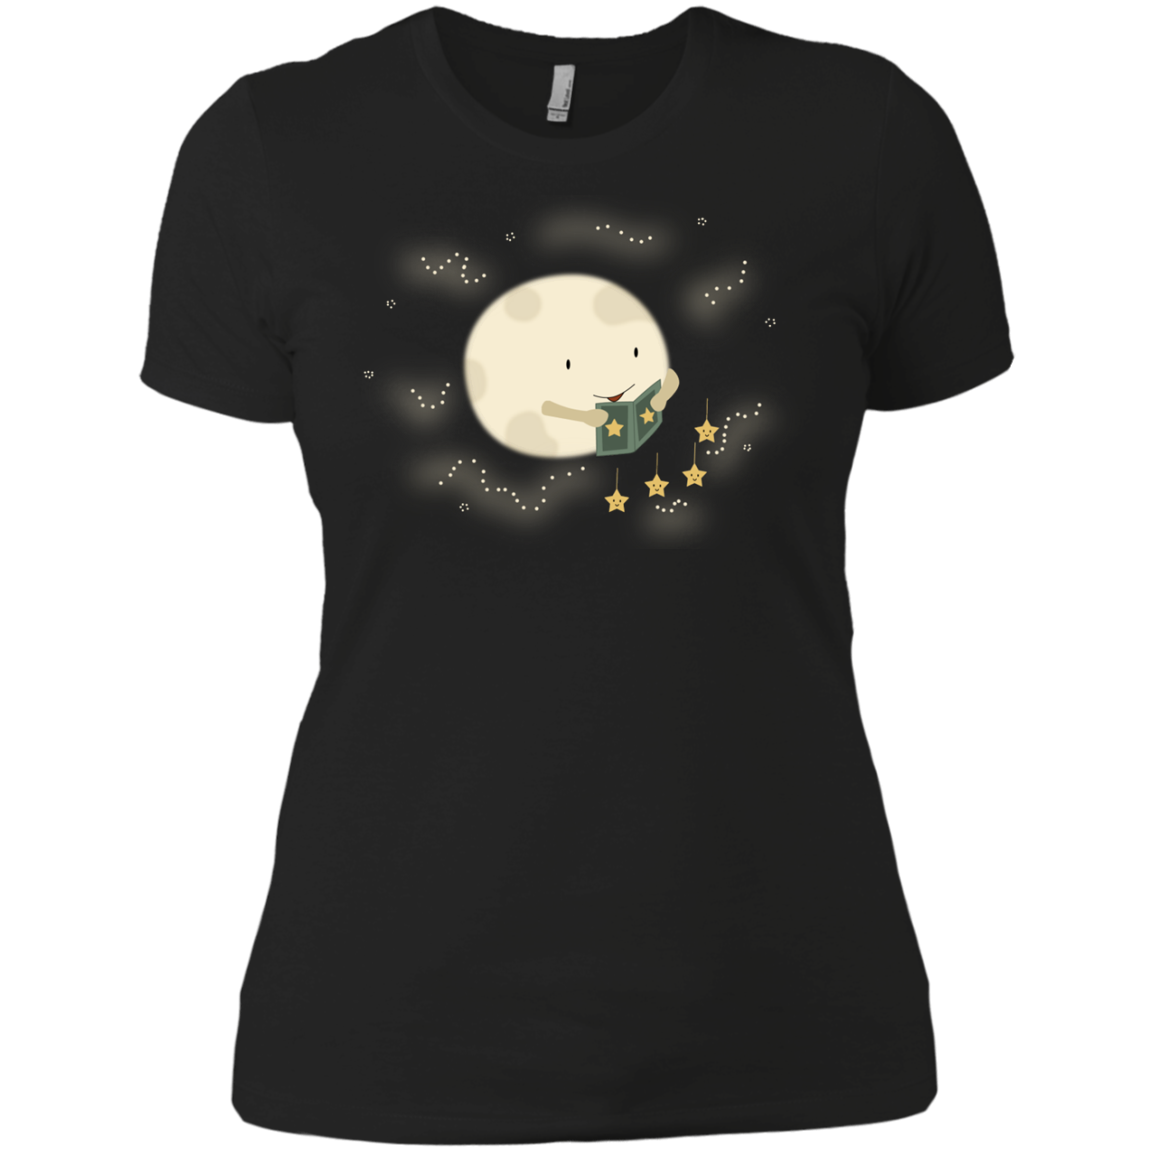 Bedtime Stories Matching Family T-Shirts - The Sun Cat